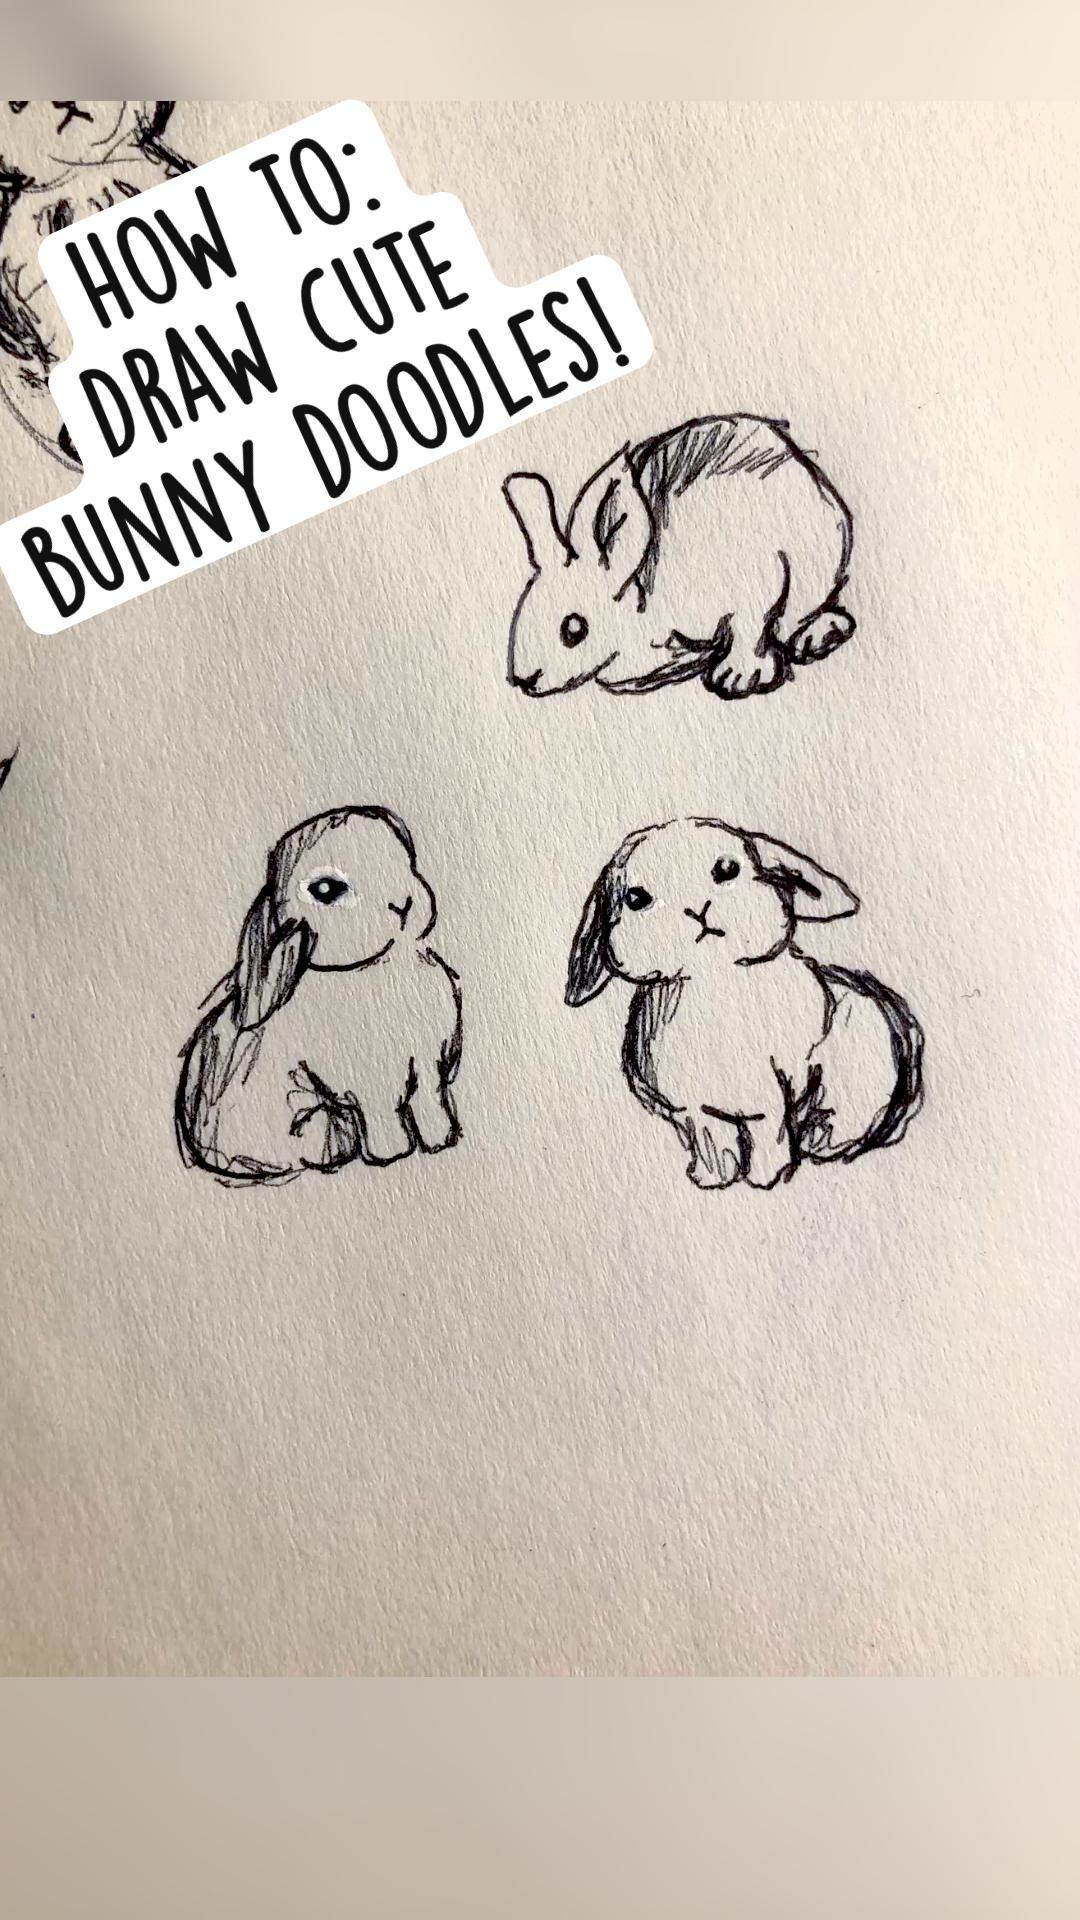 How to:  Draw cute  bunny doodles!